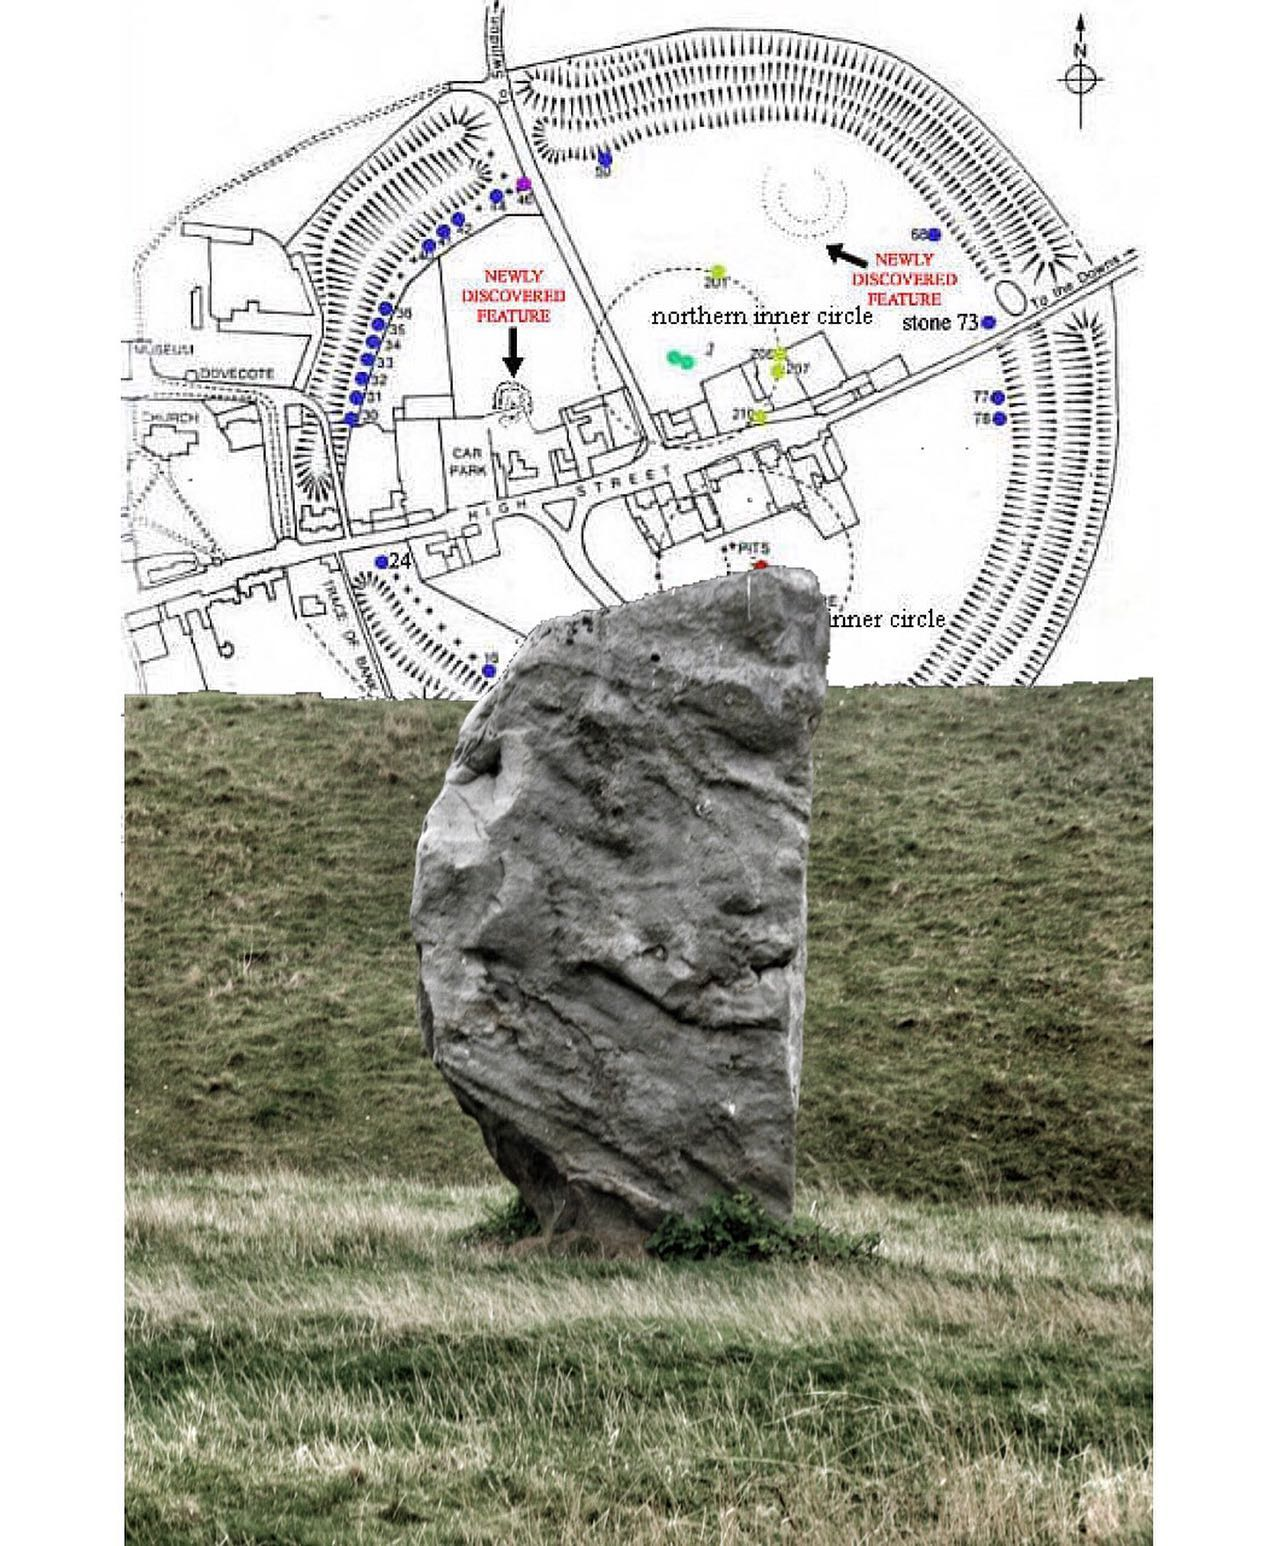 avebury stone. outer avebury stone circle. constructed image. looking out from inside the the great outer ring and set against the western inner face of the henge. participants in the original ceremonies as they passed though its two main avenues into the henge would be enclosed, cut off from the immediate world to concentrate on the rituals and the celestial bodies above. others sited on the bank tops would overlook the ceremony and in sight of the surrounding monuments and its avenues. these banks were sufficiently high enough to be intervisible with silbury hill, windmill hill, west kennet and south street longbarrows. ..#avebury #aveburystonecircle #sarsons #ancientarchitecture #anientceremony #ceremonialsite #aveburyavenue #silburyhill #windmillhill #megalithicsite #westkennetlongbarrow #megalith #southstreetbarrow #westkennetavenue #beckhamptonavenue #longbarrow #ancientwisdom #prehistory #archeology #constructedimage #montageconstruction..follow. goto montagecity.com